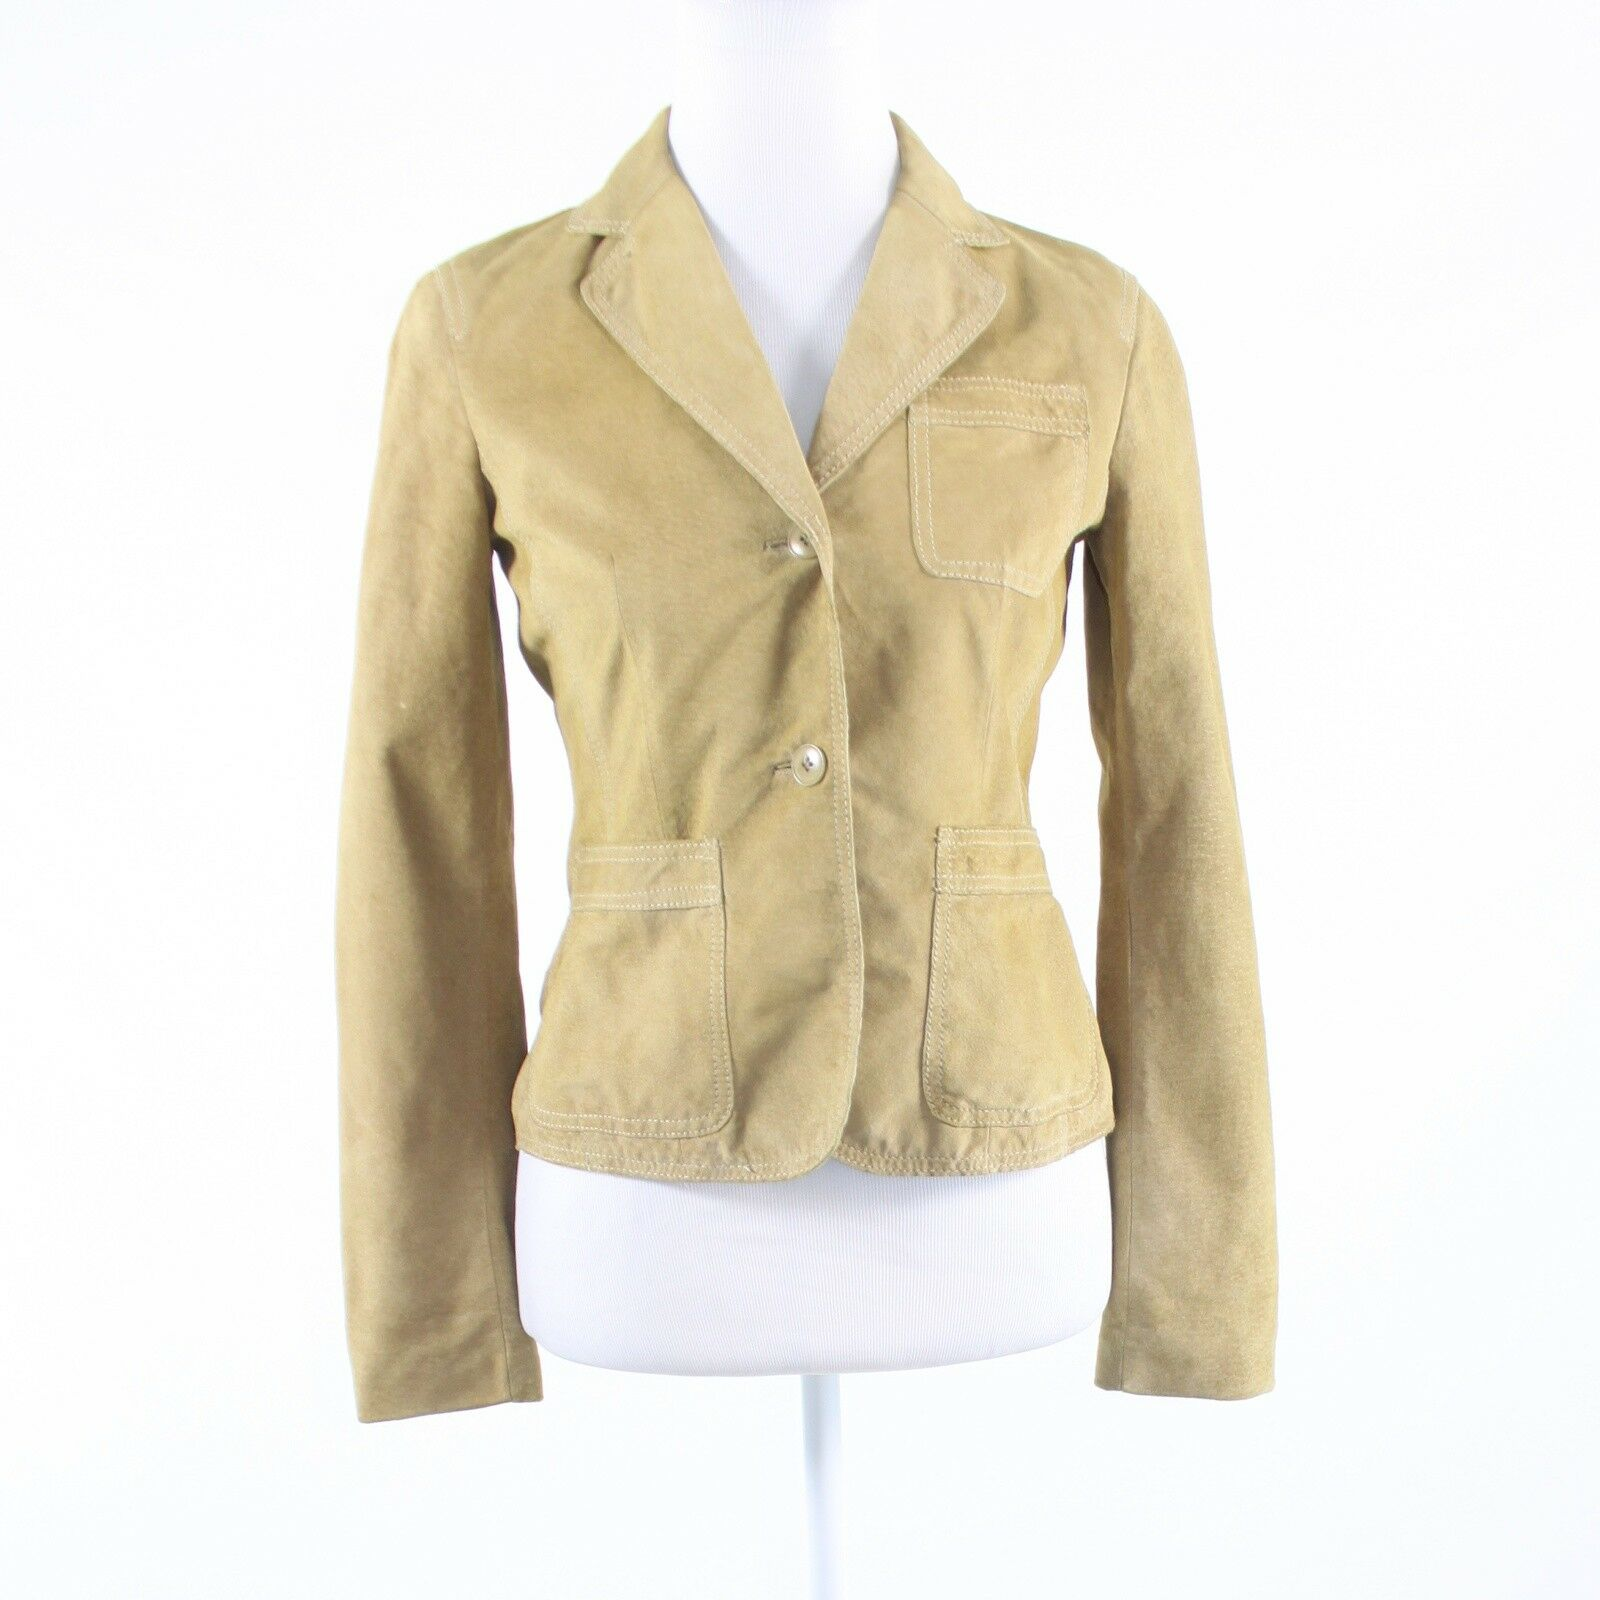 Beige suede KENNETH COLE NEW YORK long sleeve jacket XS